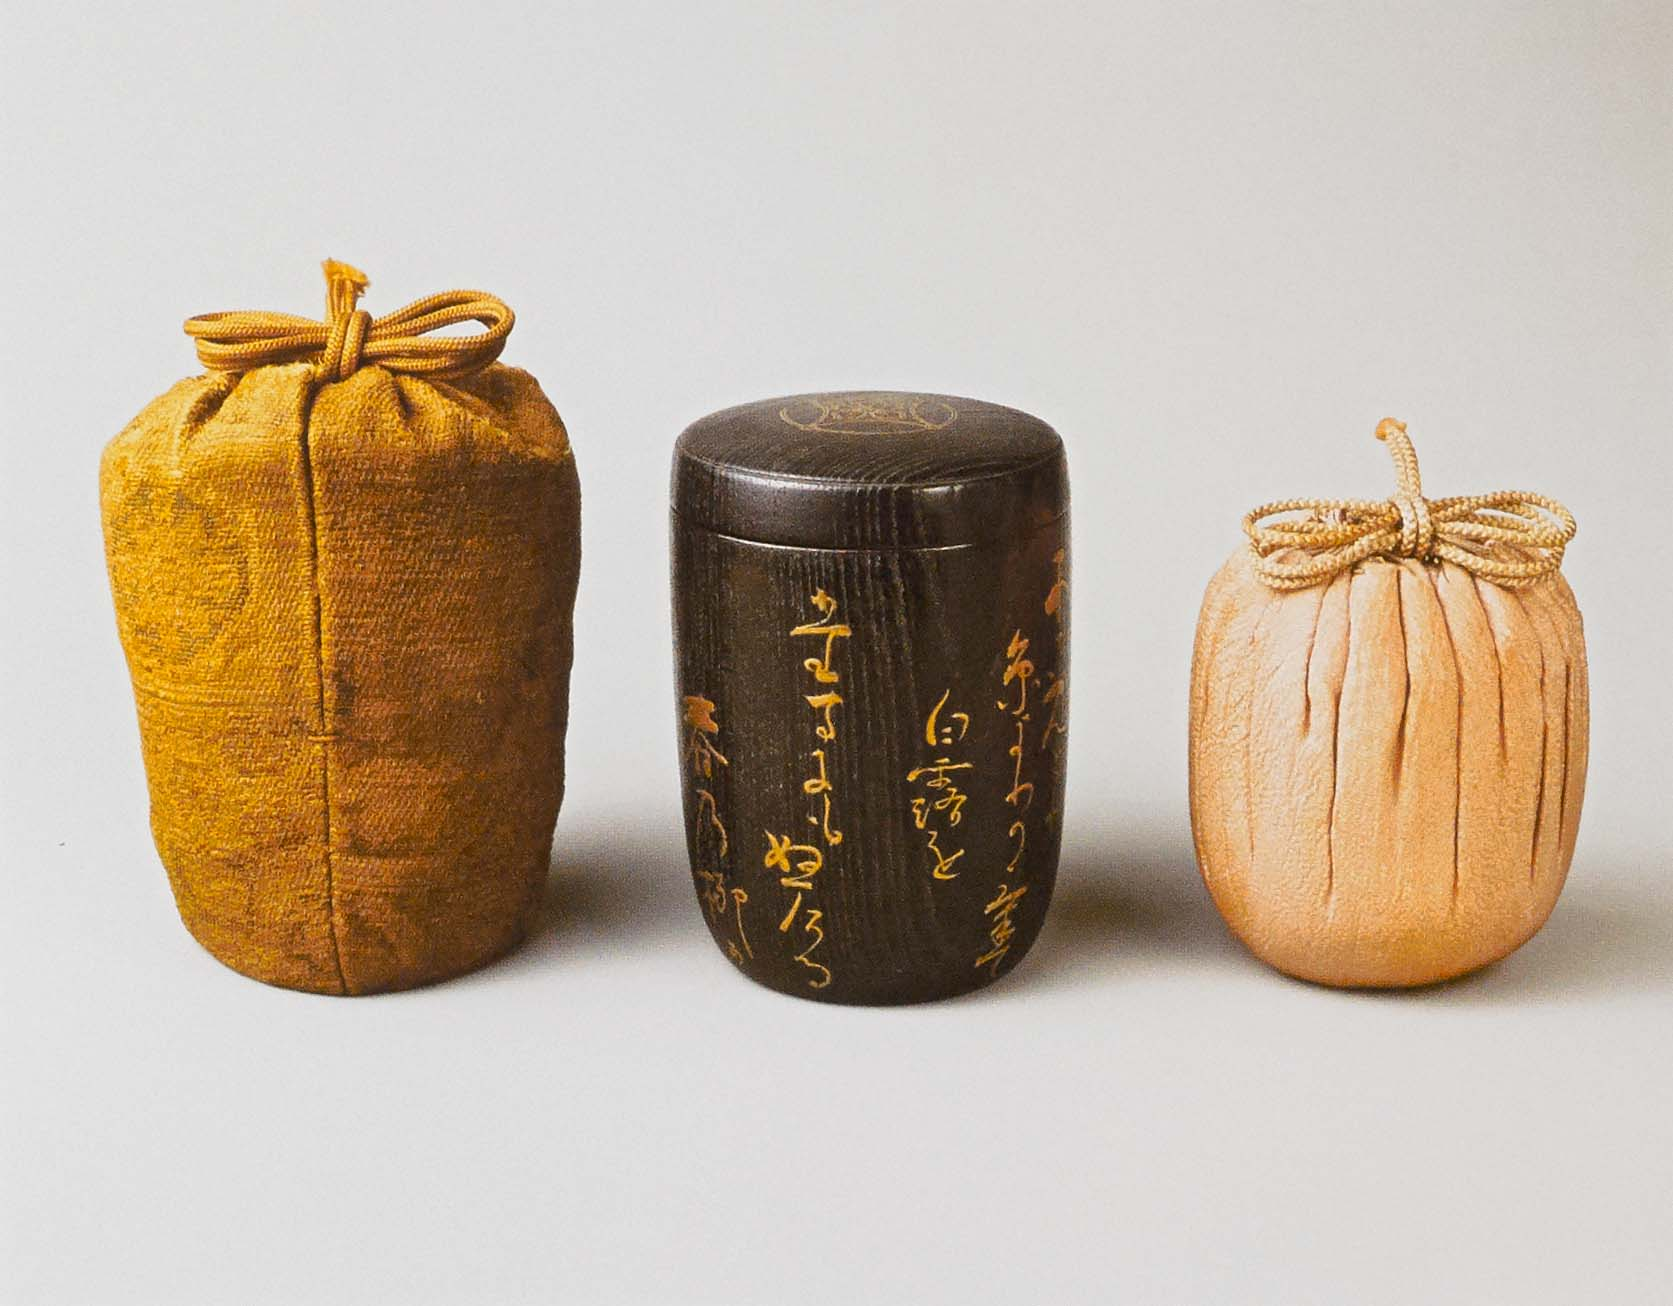 The hikiya with its bag, and the padded silk crepe storage bag for the tea caddy. Photographs by Schecter Lee.